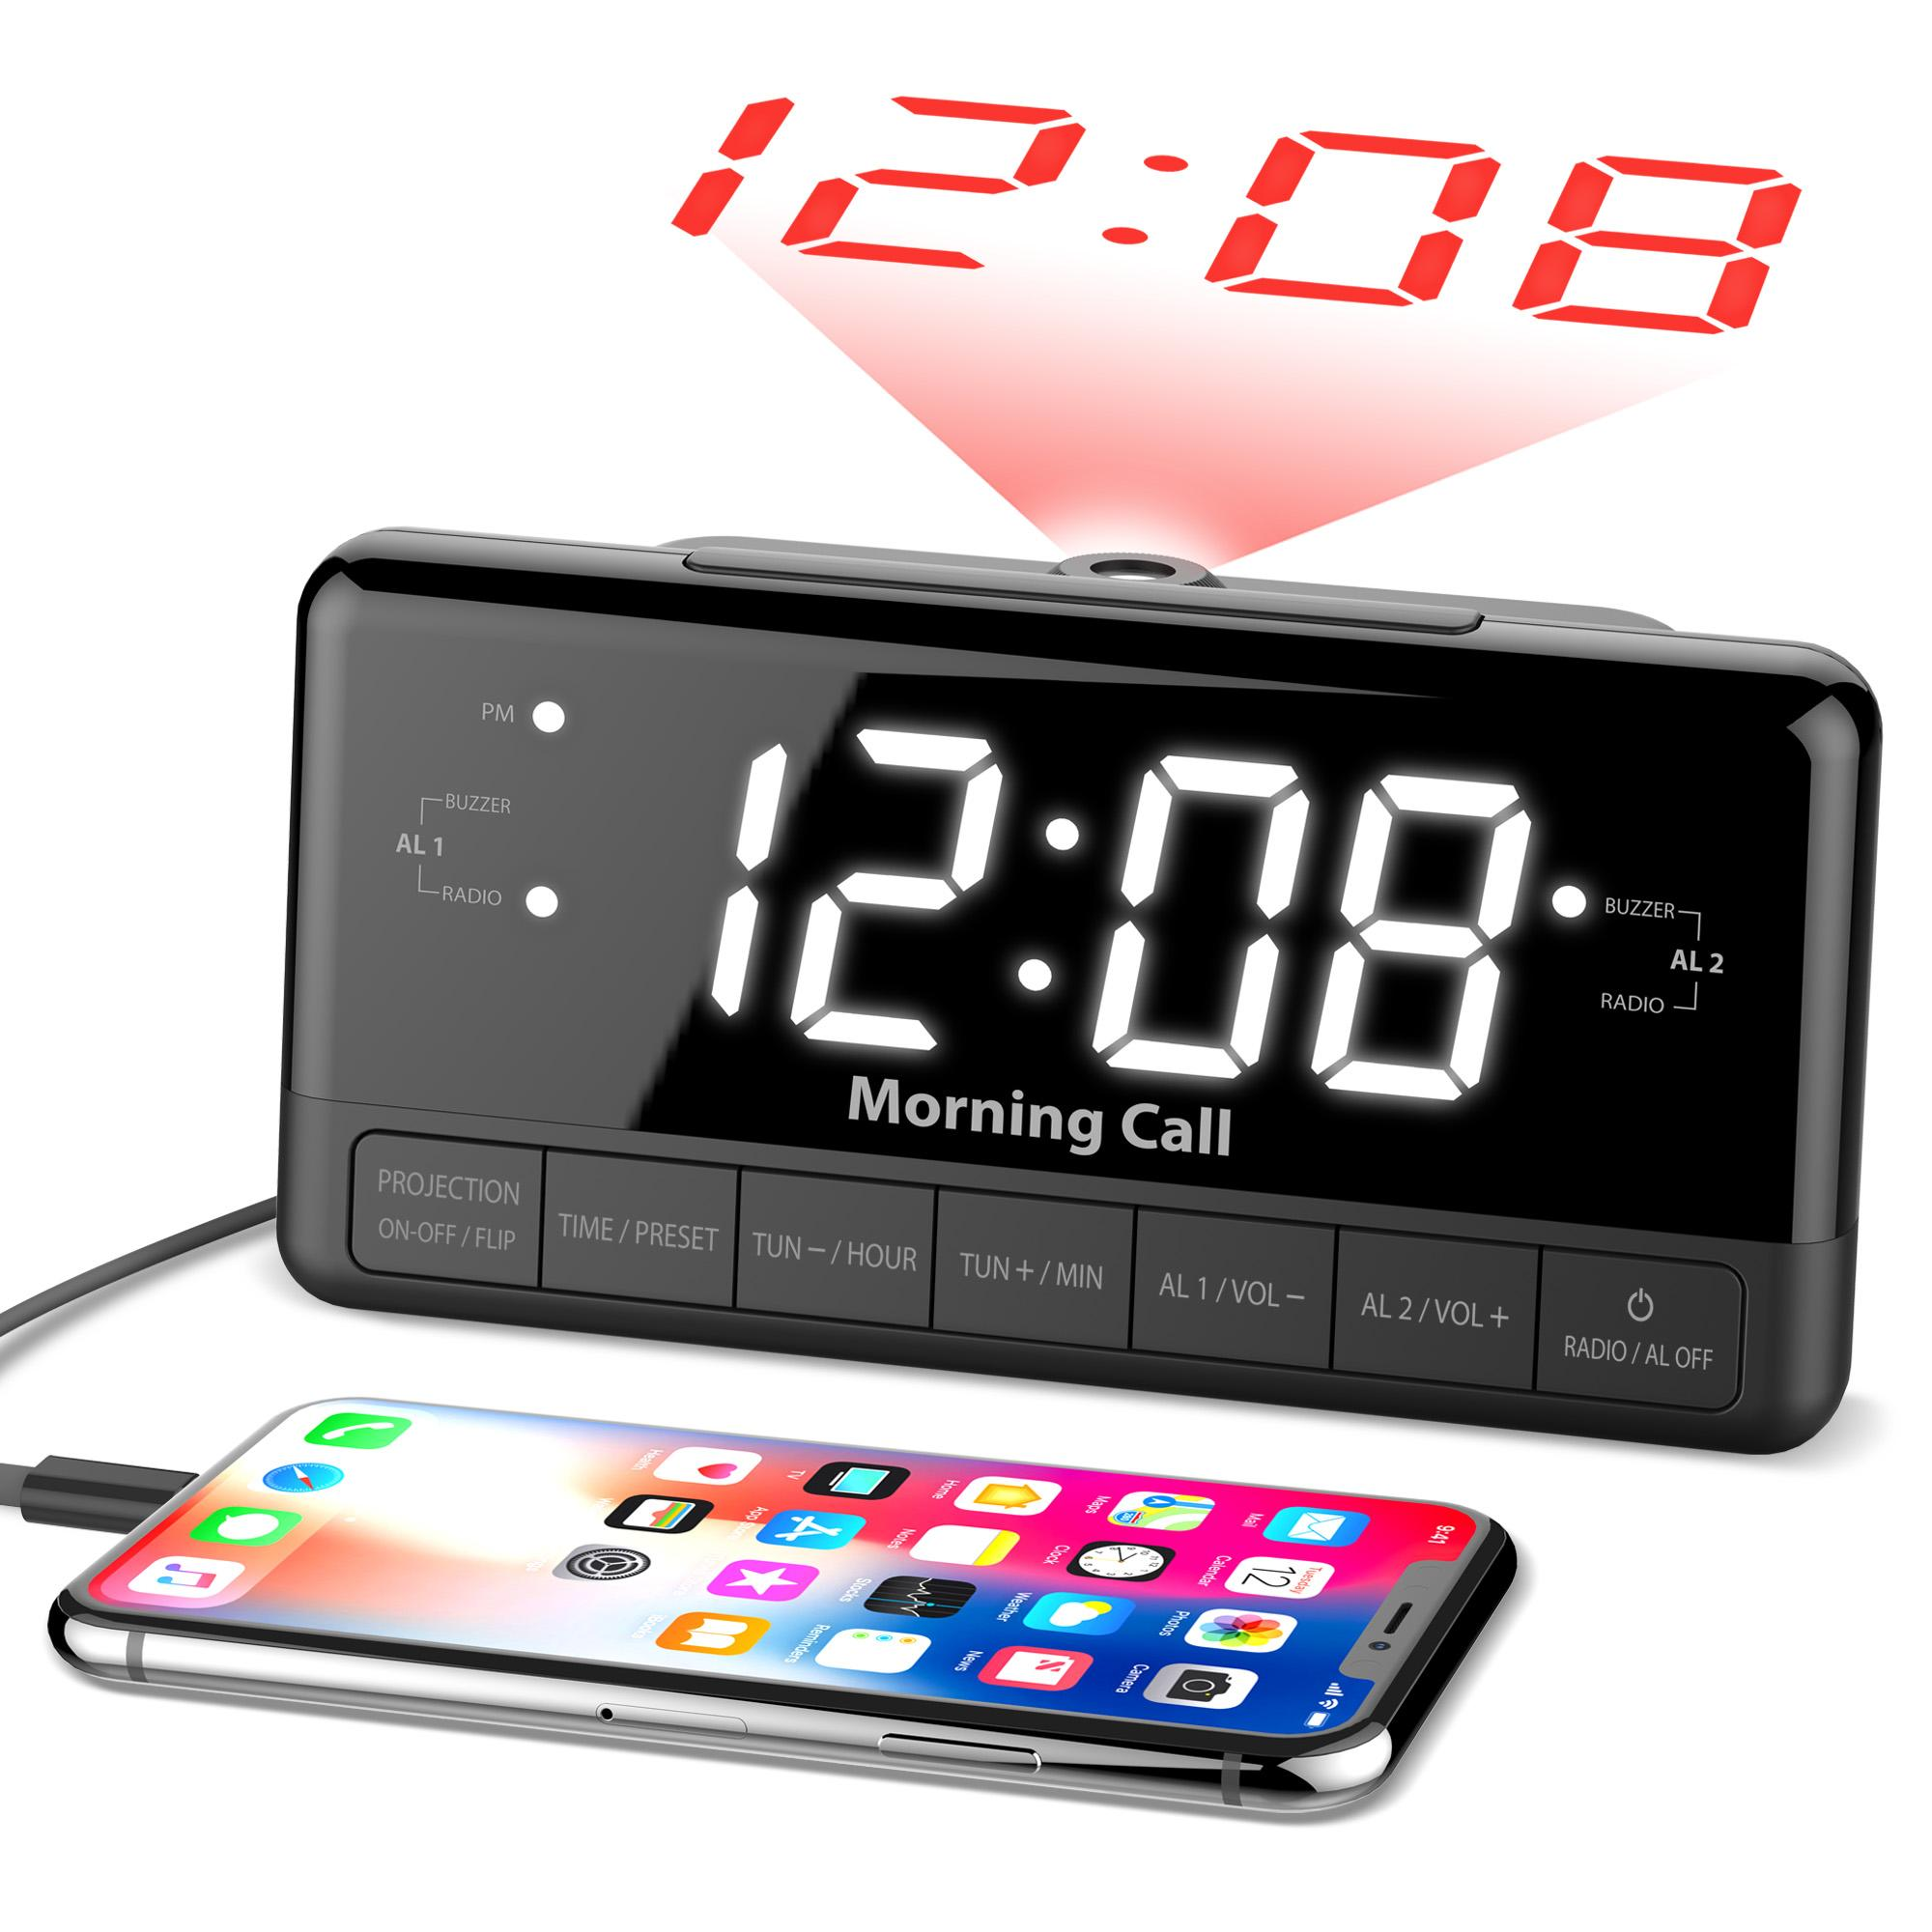 iLuv Morning Call 3 FM Radio Dual Alarm Clock with 1.2 Jumbo White LED Display Projection MORCAL3BSBK